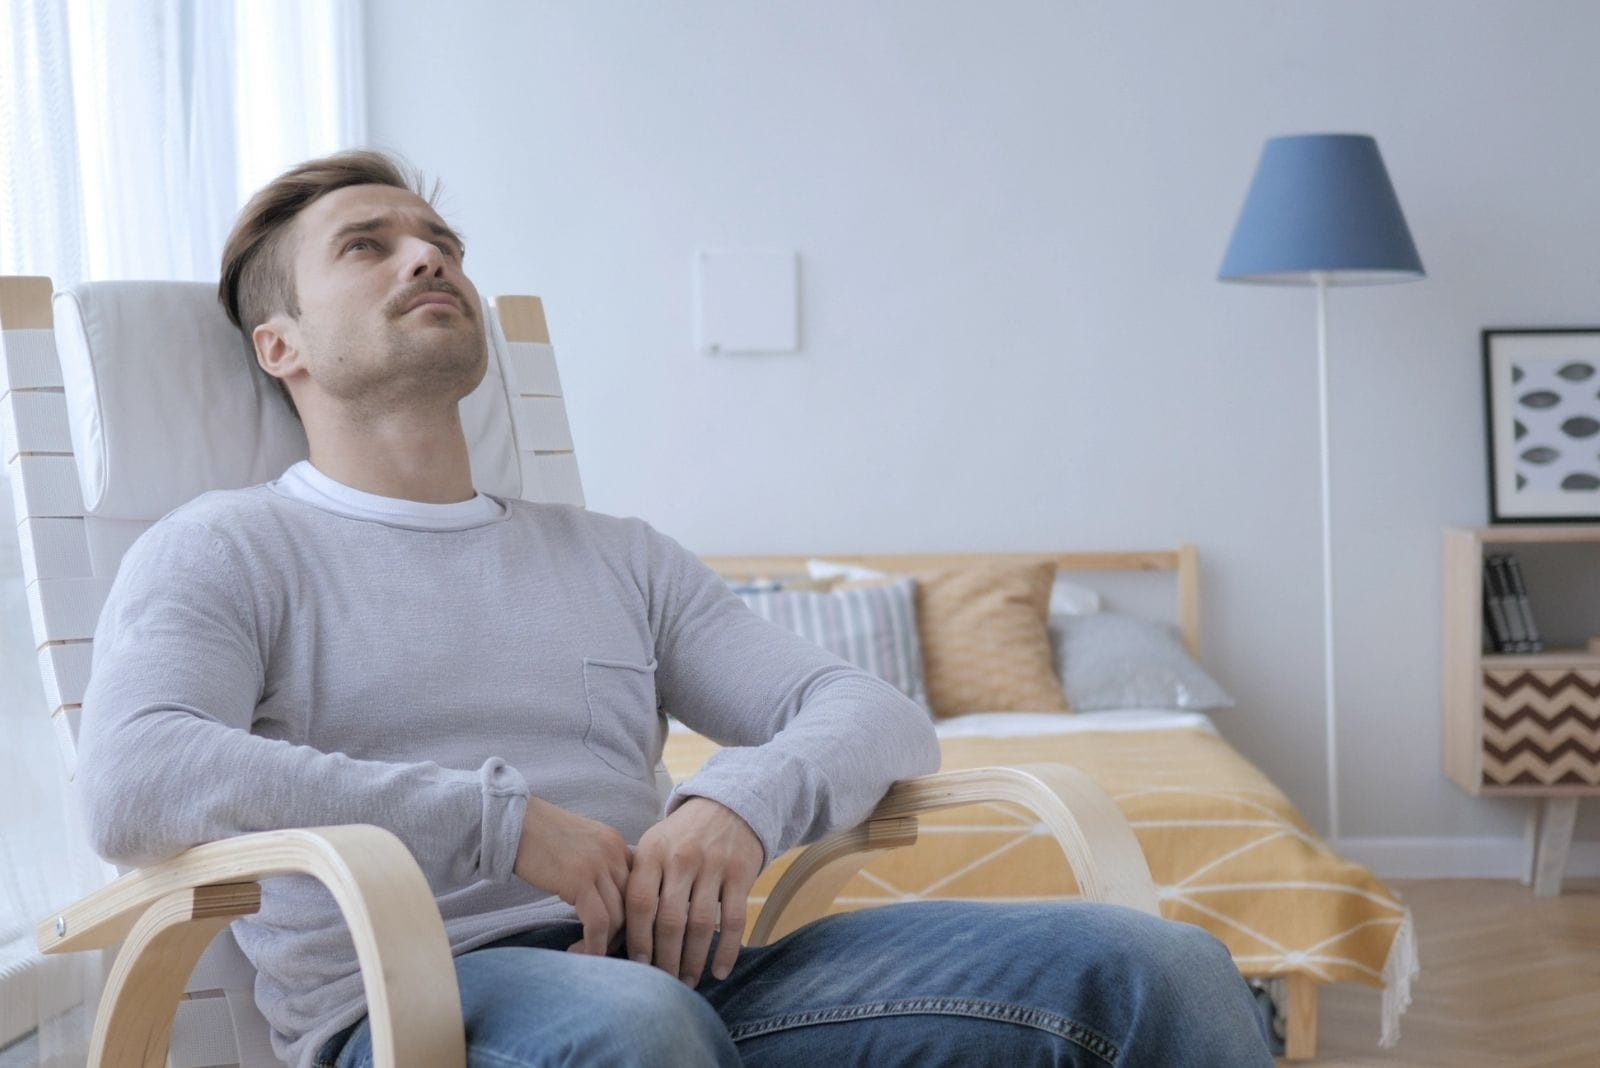 pensive adult man sitting on the chair inside the bedroom looking at the roof